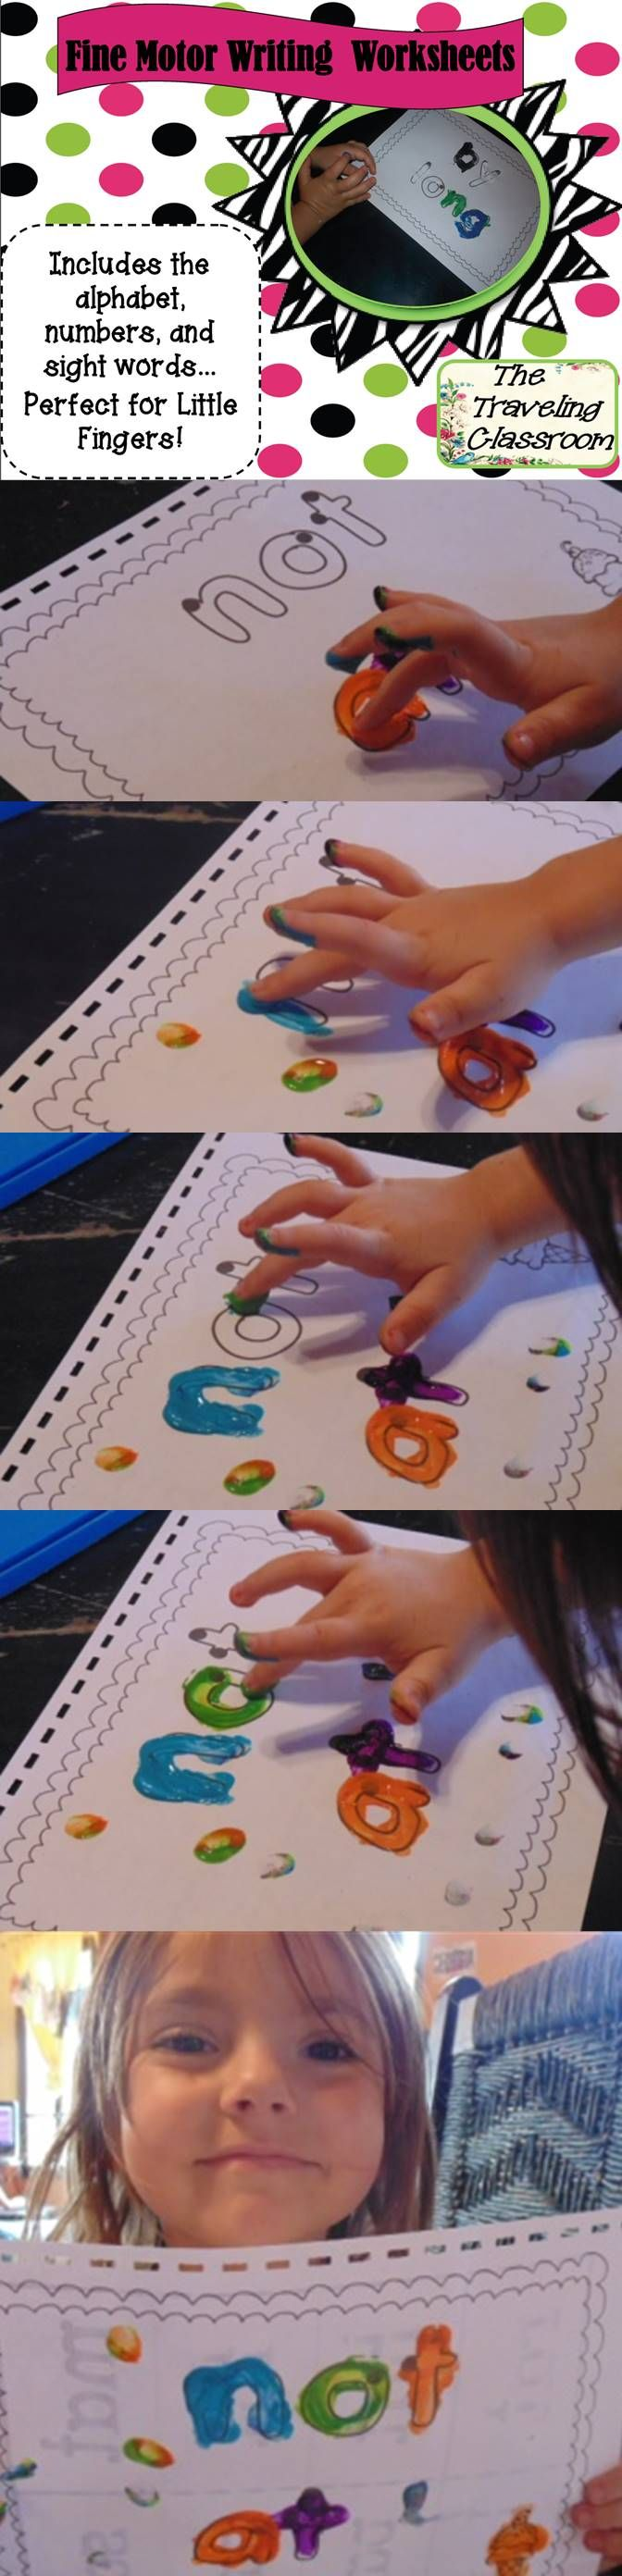 ABC, 123, 100 party, and Sight Words Worksheets for Activity Centers and More! You could use them with play doe, finger-painting, coloring, or just laminate them and use dry erase markers!   Super fun for those little fingers they fit perfectly for tracing!  $